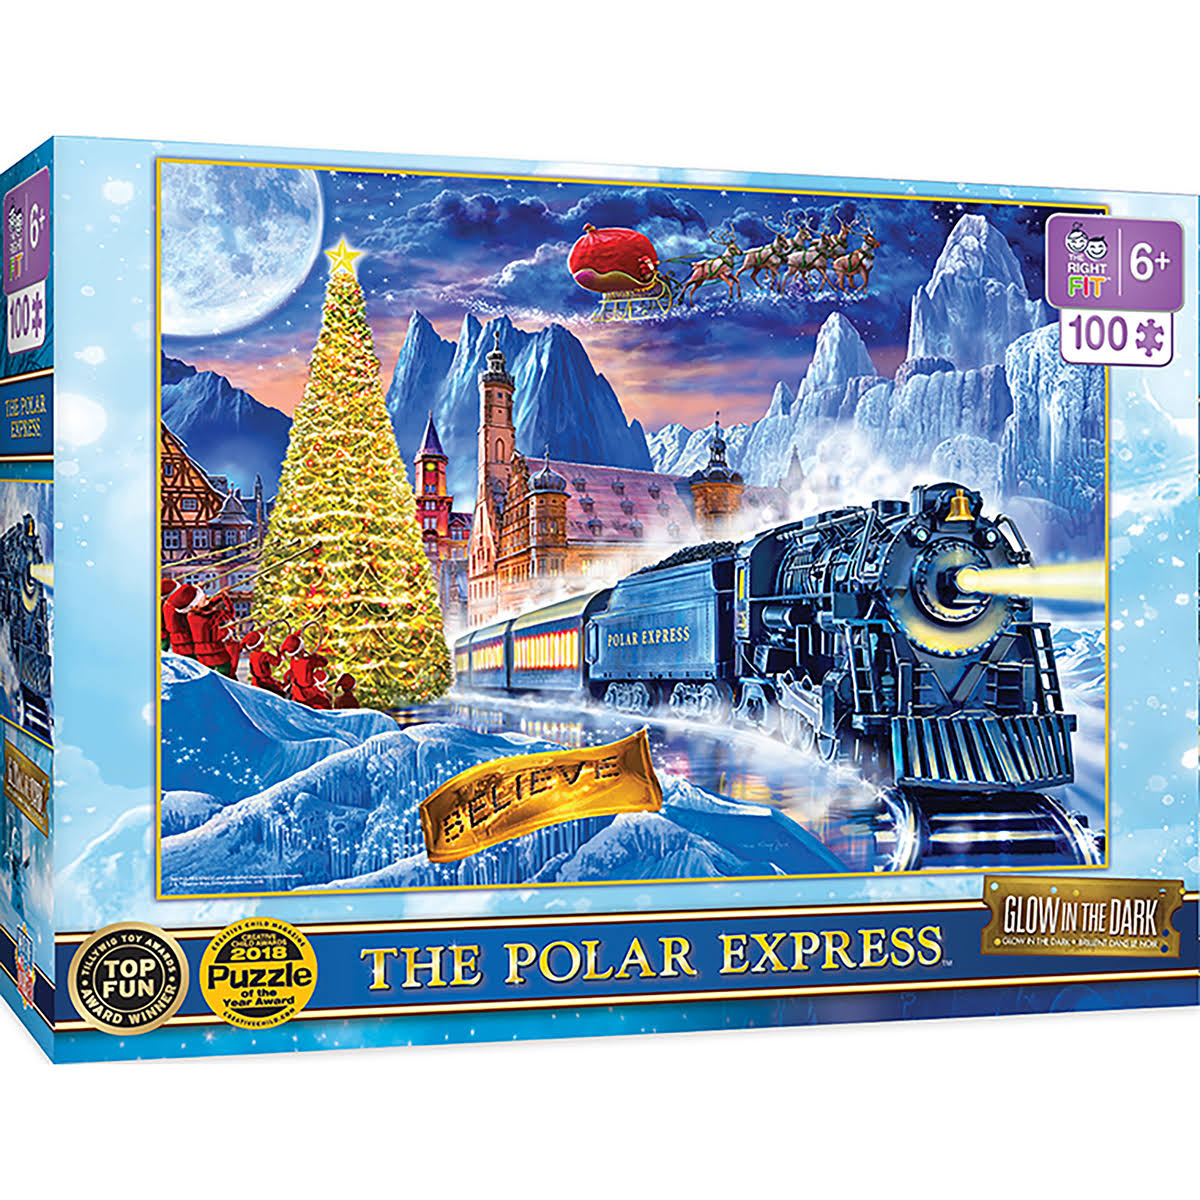 The Polar Express - 100pc Glow in The Dark Puzzle